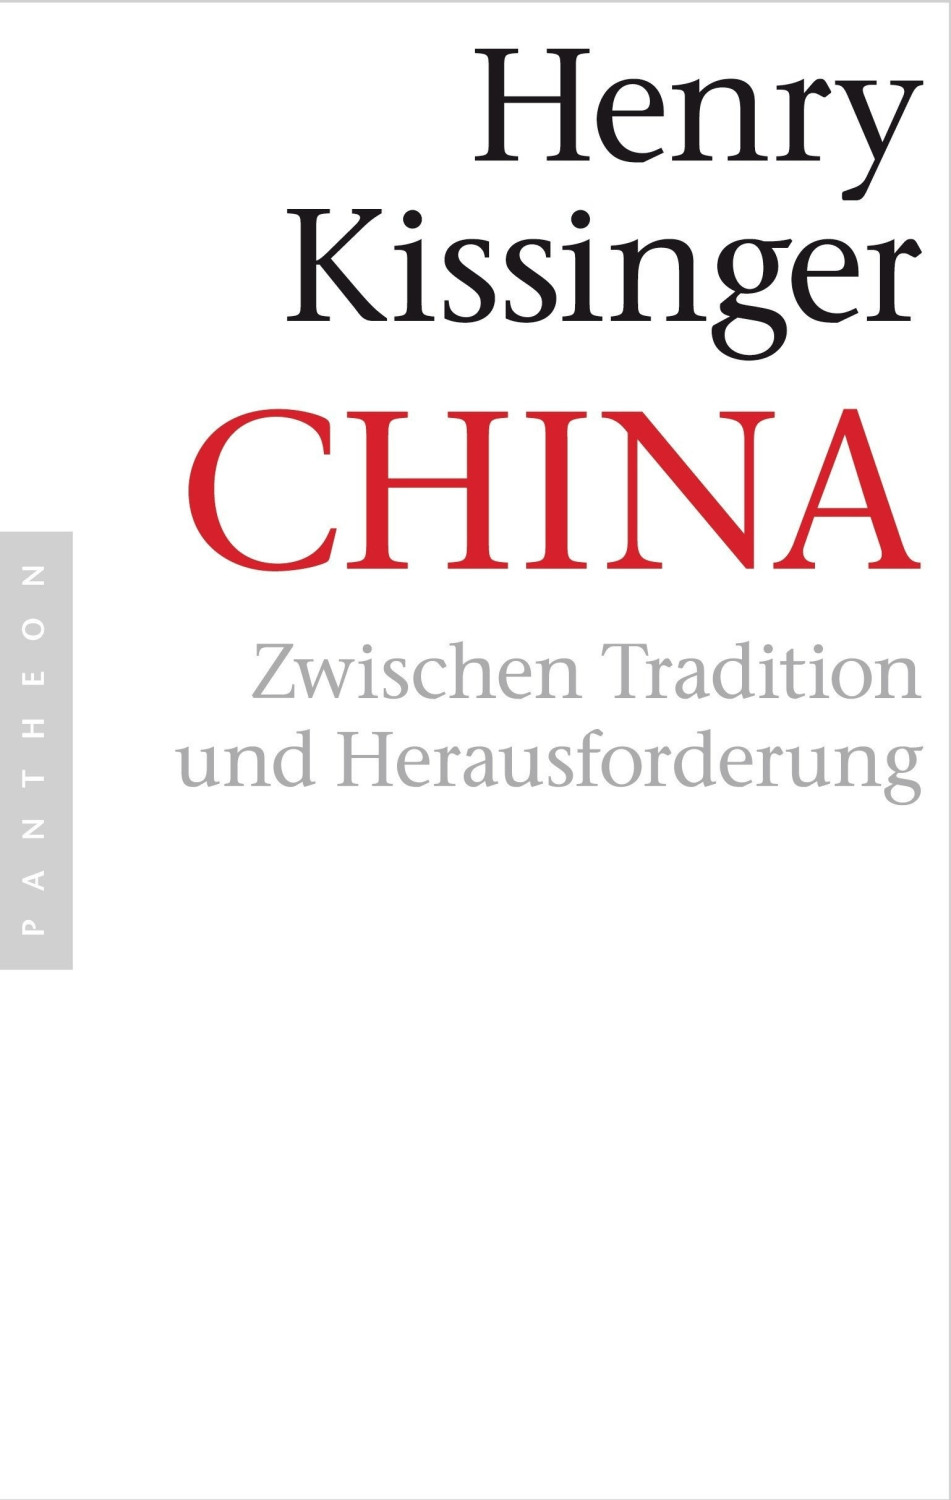 China (Henry A. Kissinger)